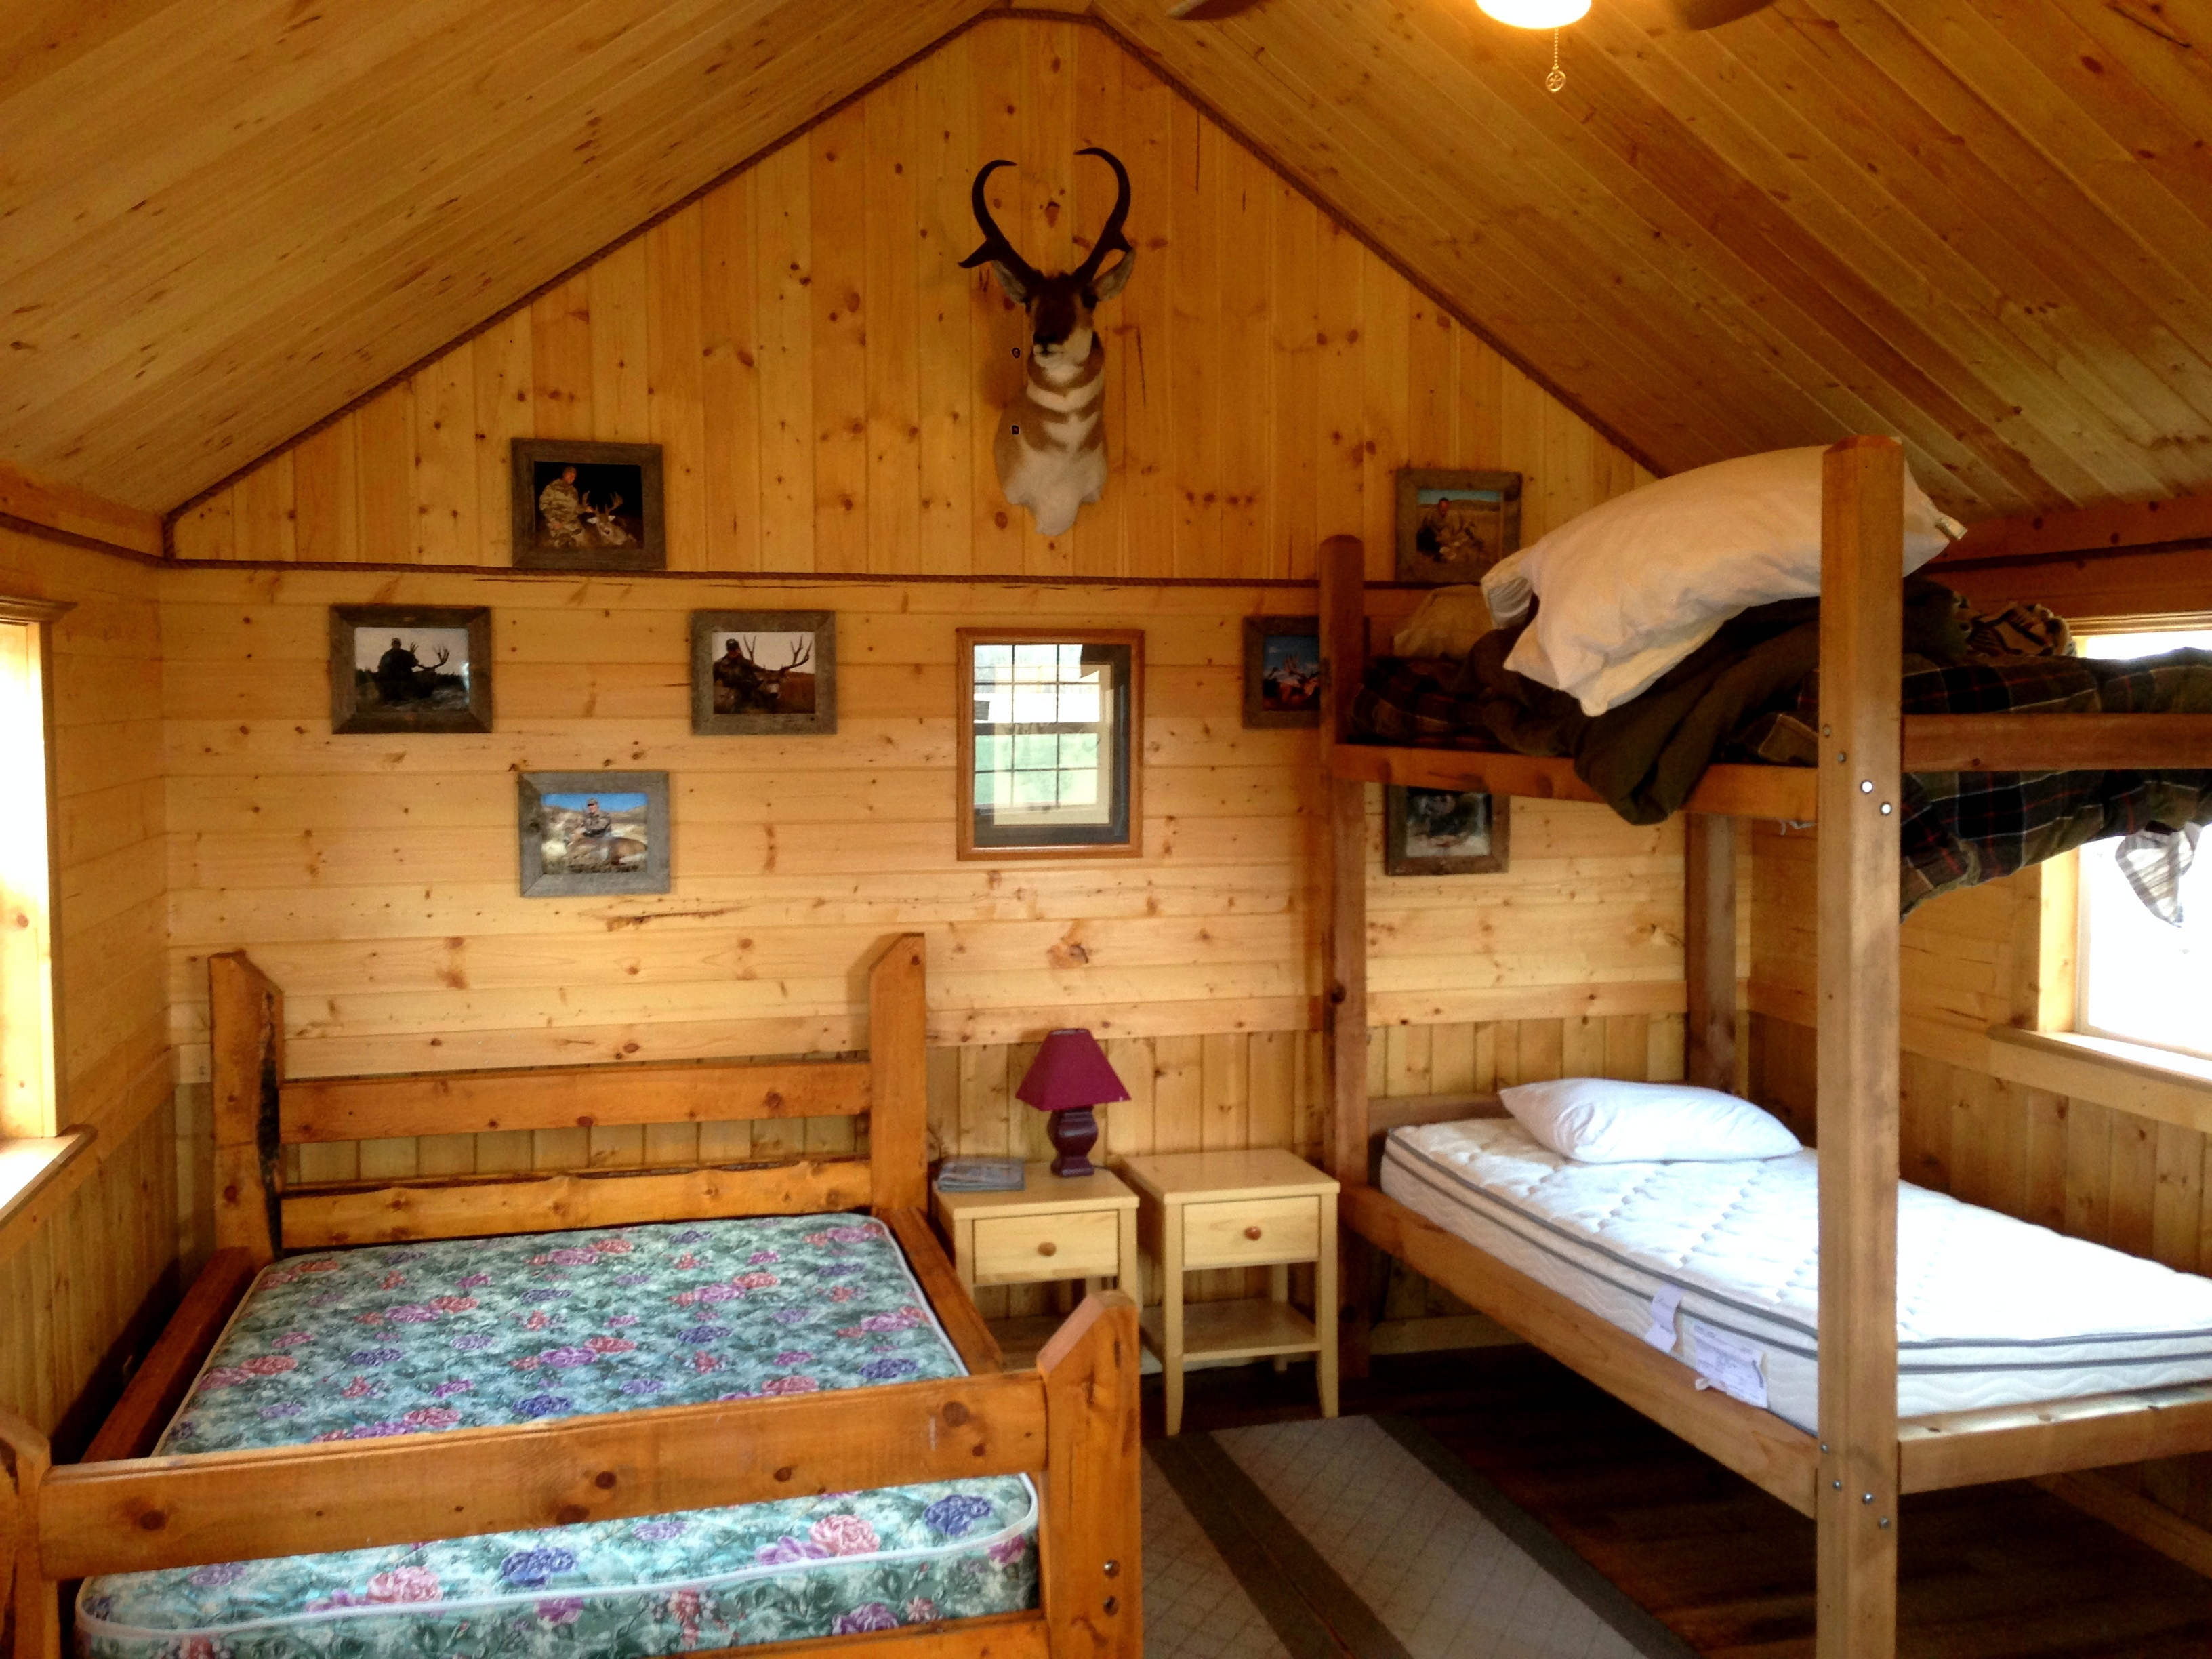 Cabin Wall Decor Ideas Home Decorating Bedroom Atmosphere Lake House Style Deer Lighting Log Furniture And Wood Catalogs Interior Apppie Org